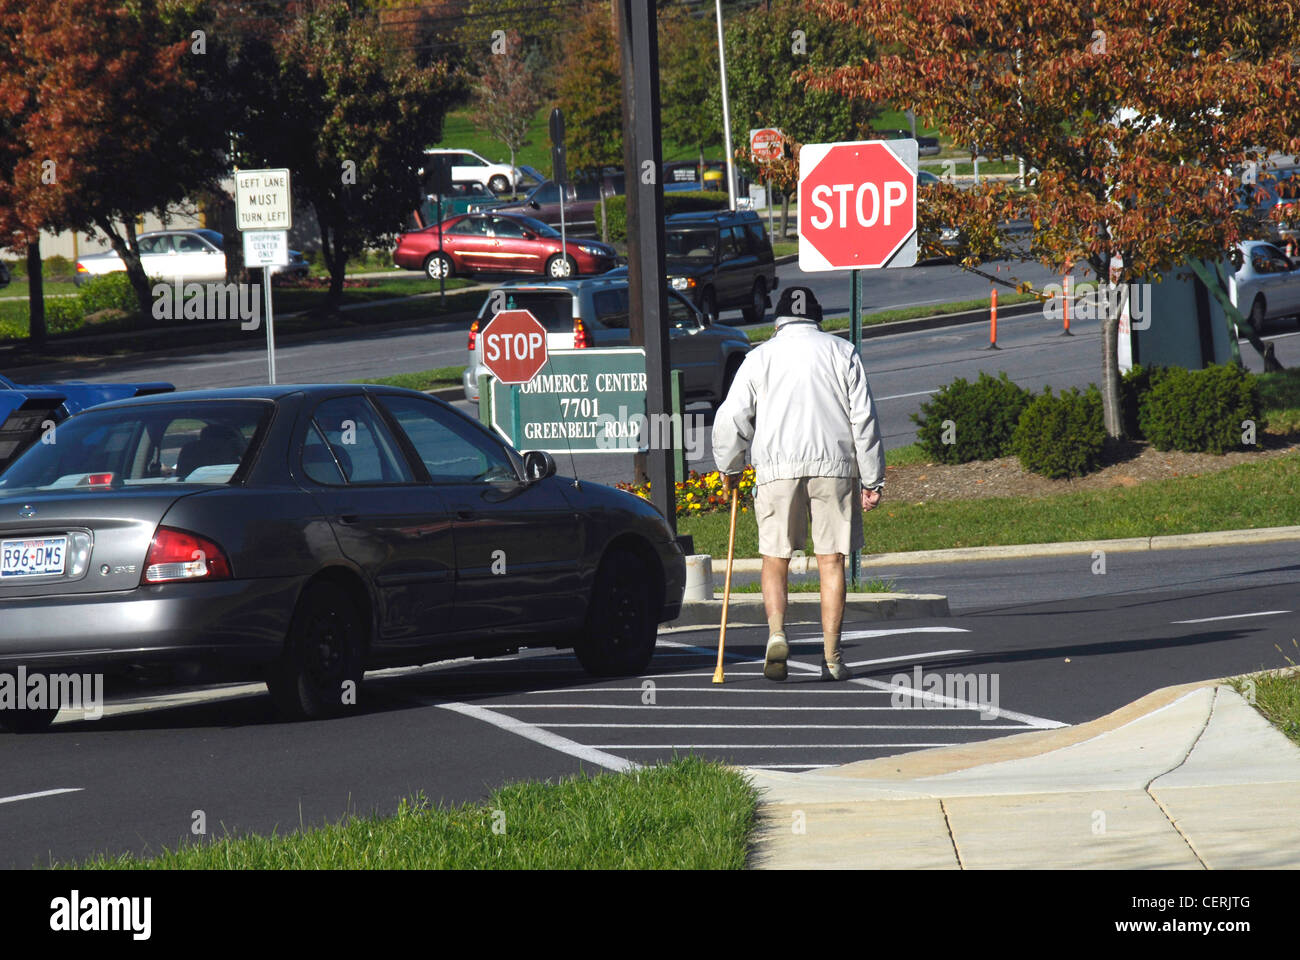 Senior citizen walks in a crosswalk while a car almost hits him - Greenbelt, Md - Stock Image